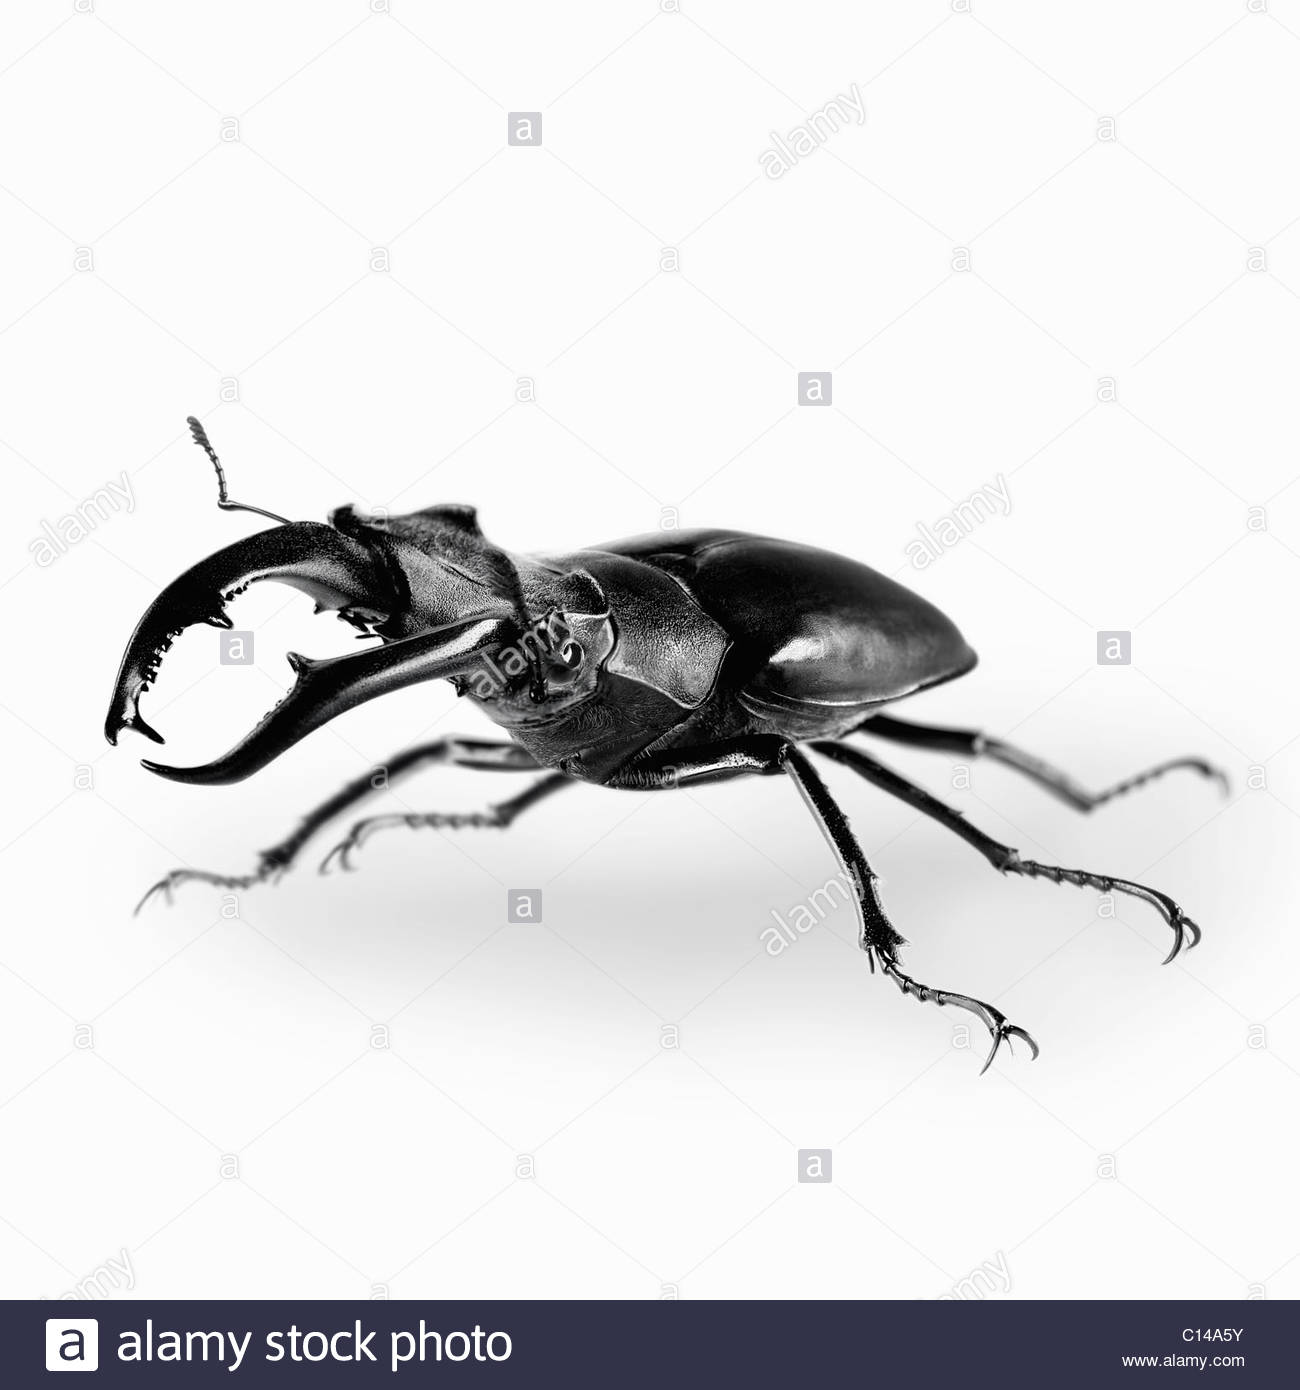 Close up of stag beetle Photo Stock